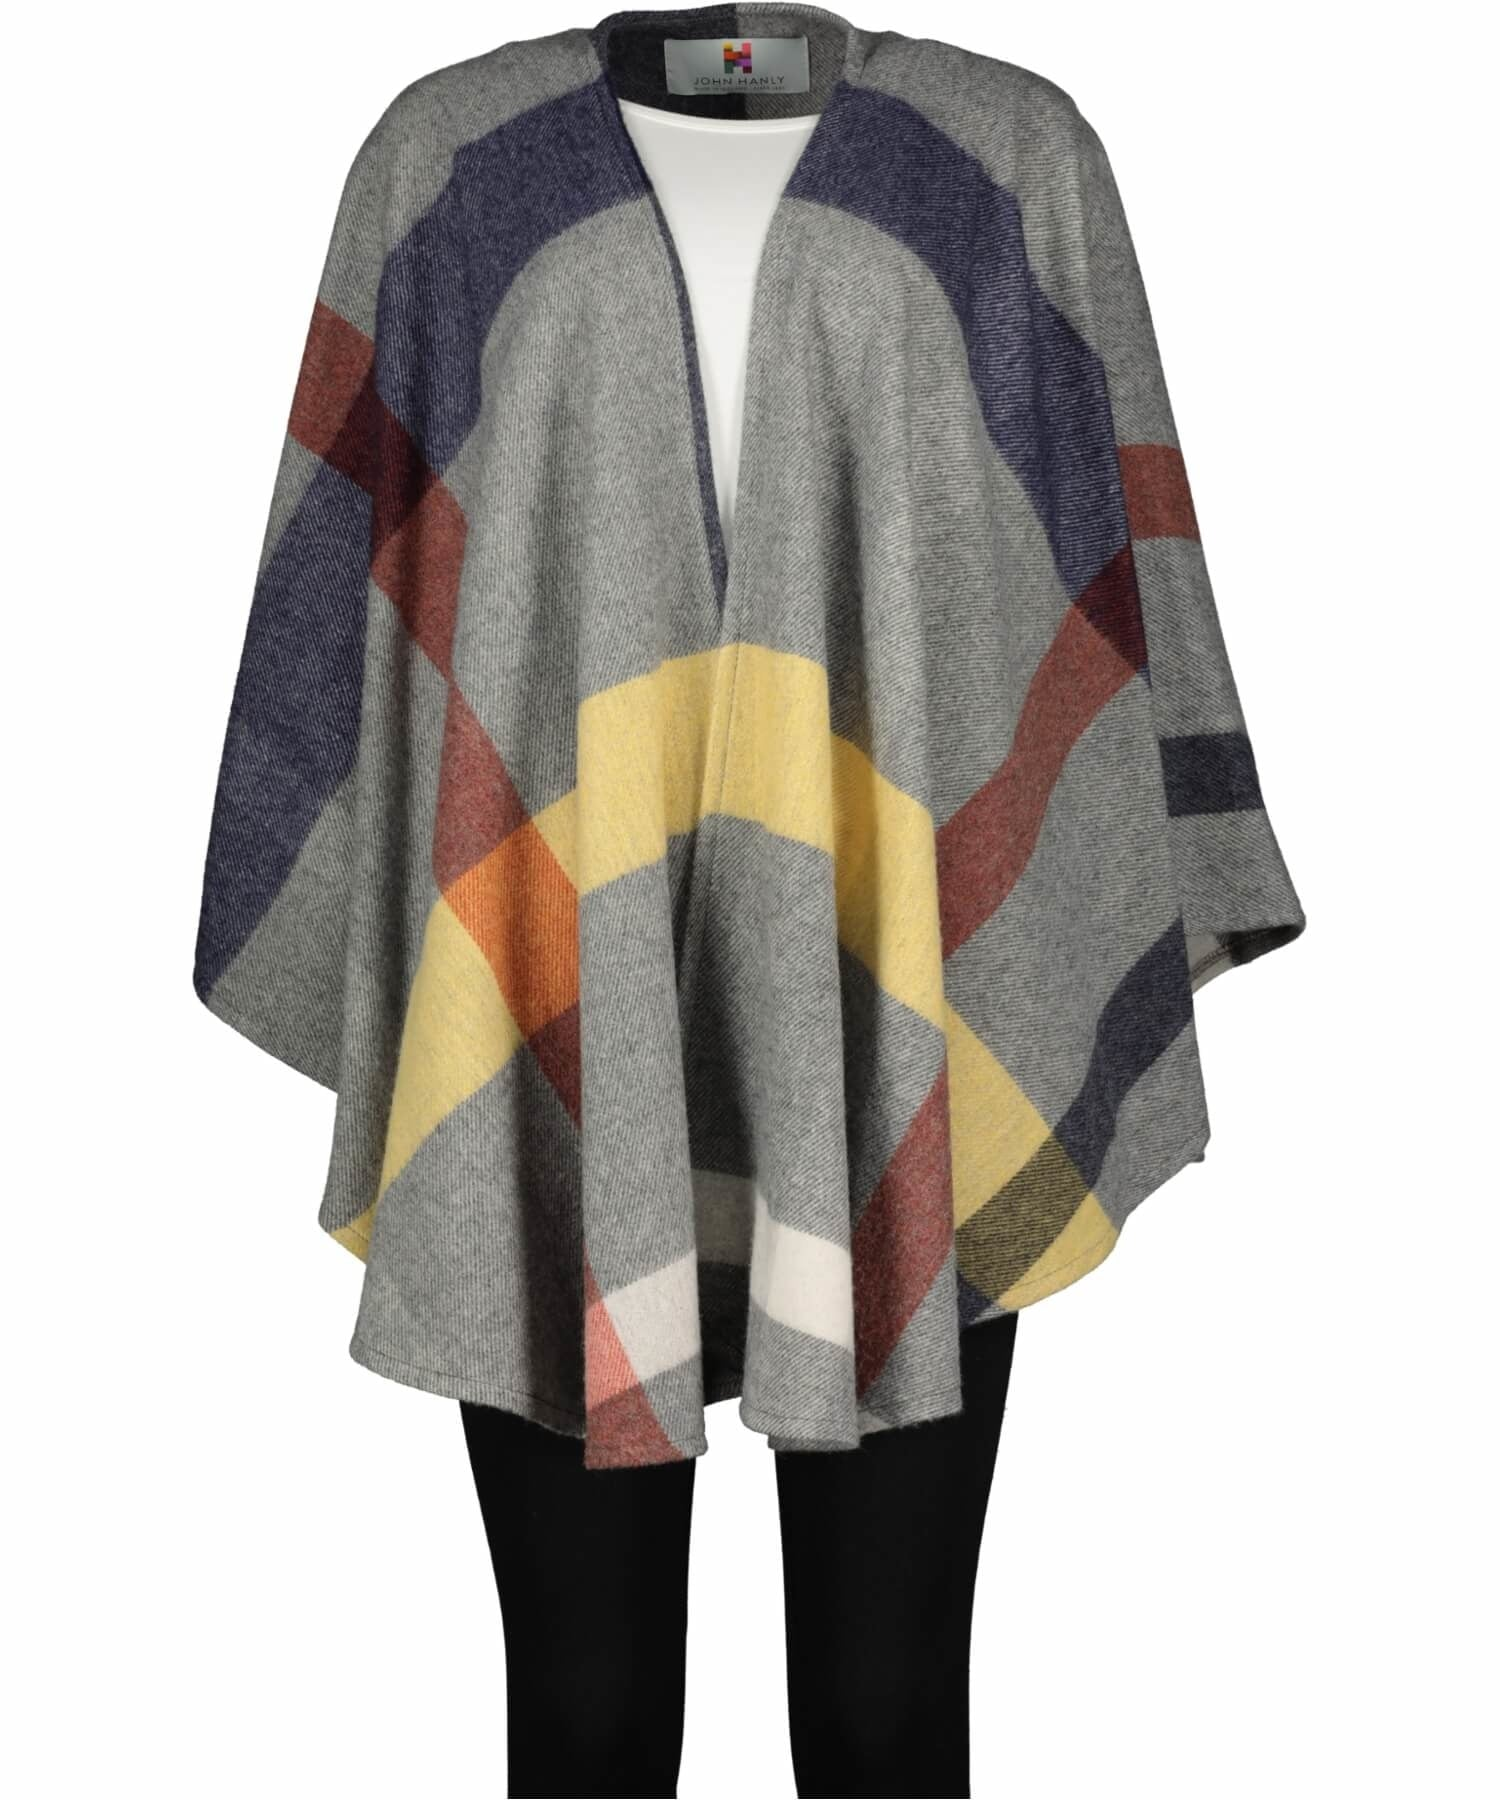 Sue Cape - City Check - [John Hanly] - Ladies Capes, Shawls & Ponchos - Irish Gifts